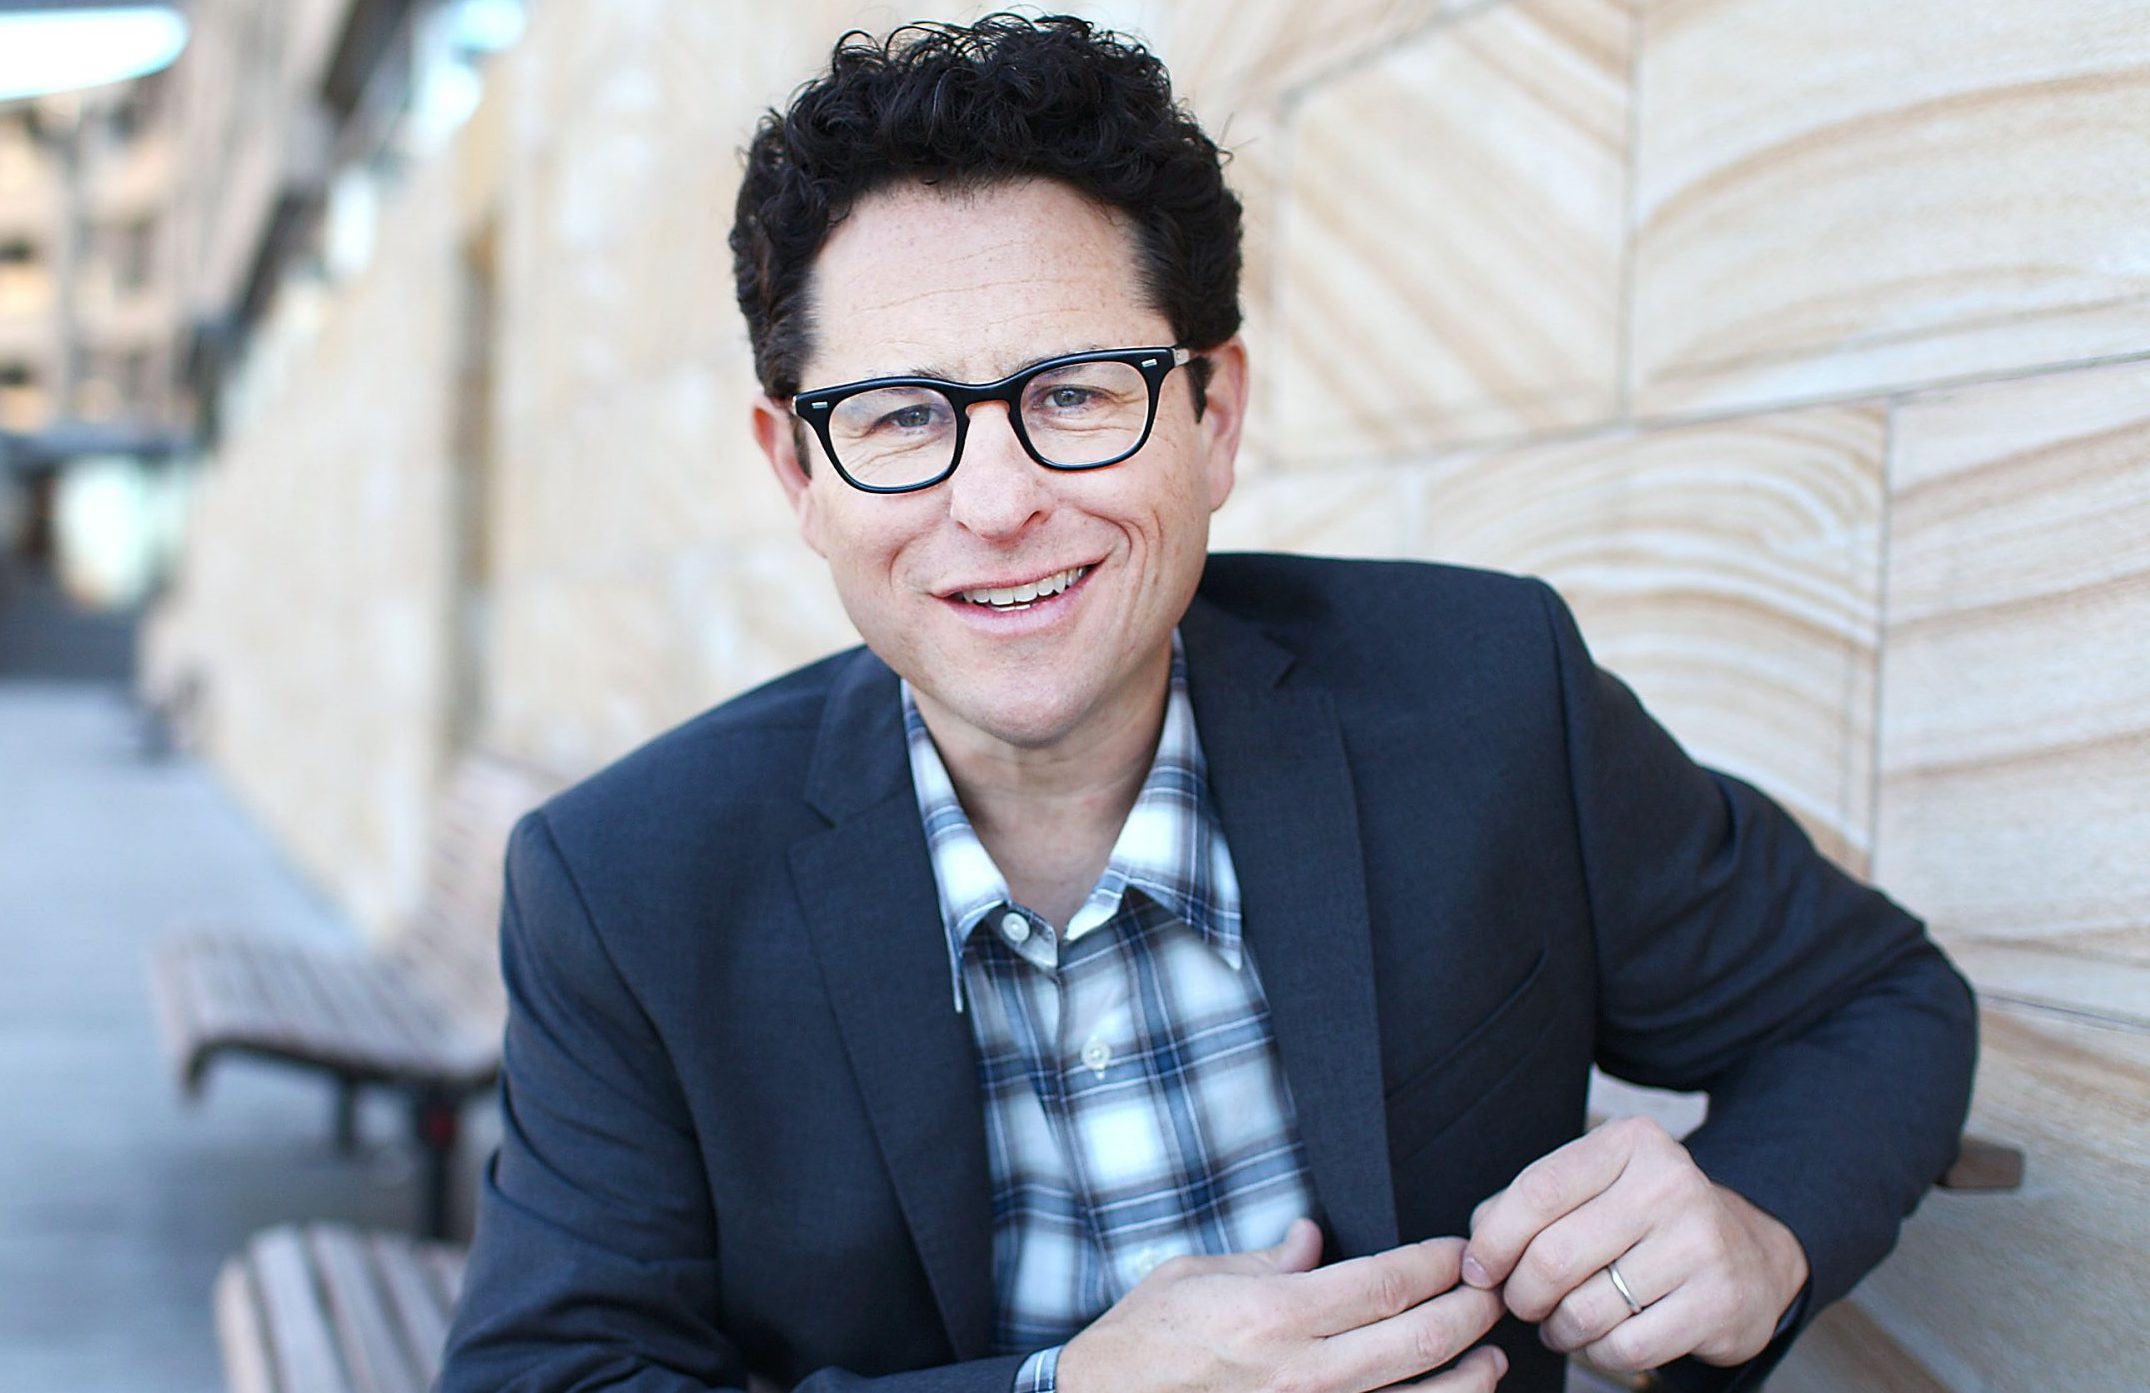 """SYDNEY, AUSTRALIA - APRIL 23: Director J.J. Abrams at the """"Star Trek Into Darkness"""" photo call on April 23, 2013 in Sydney, Australia. (Photo by Marianna Massey/Getty Images for Paramount Pictures International)"""